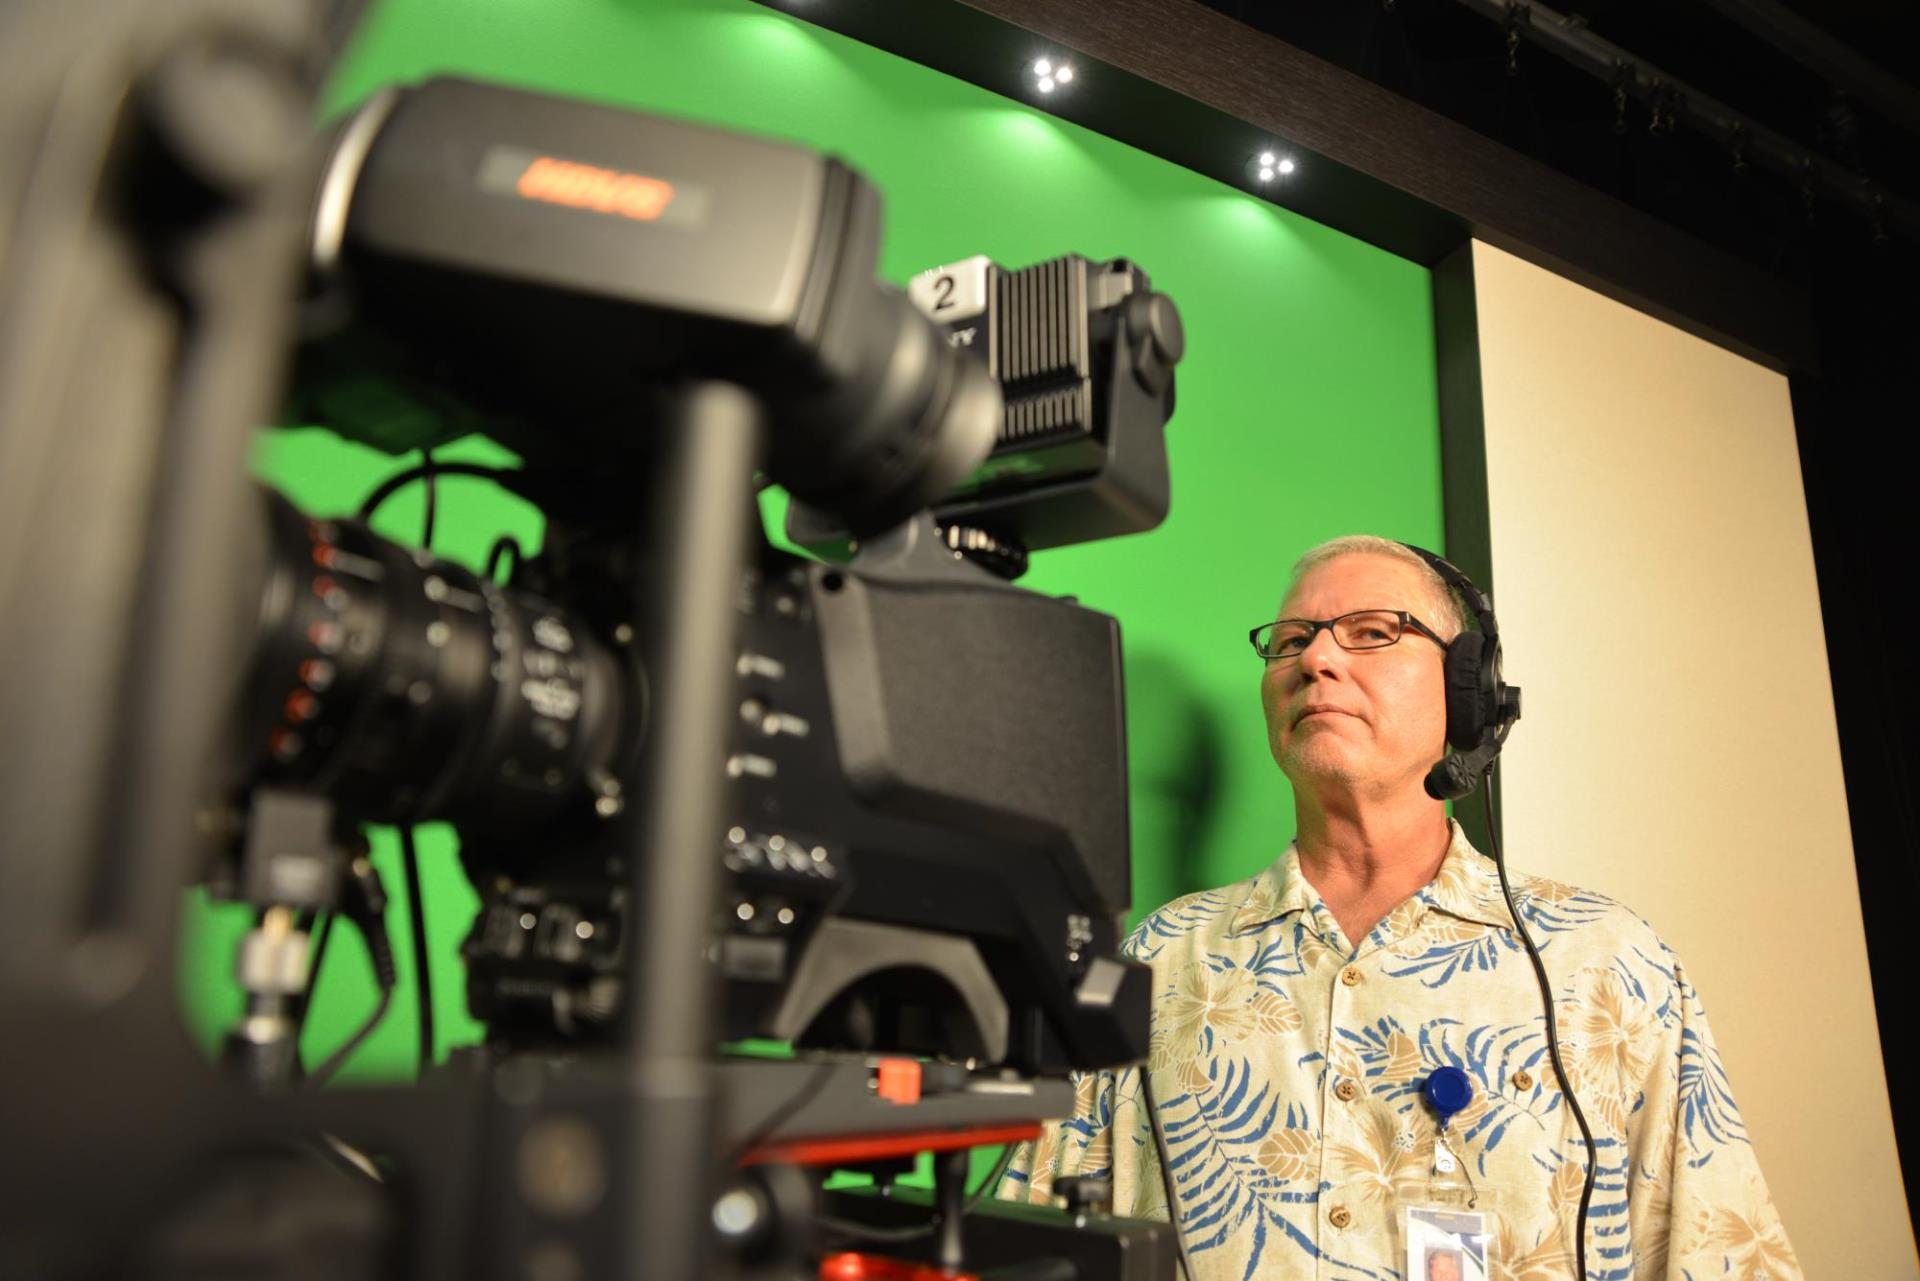 Cameraman in the Access Sarasota studio